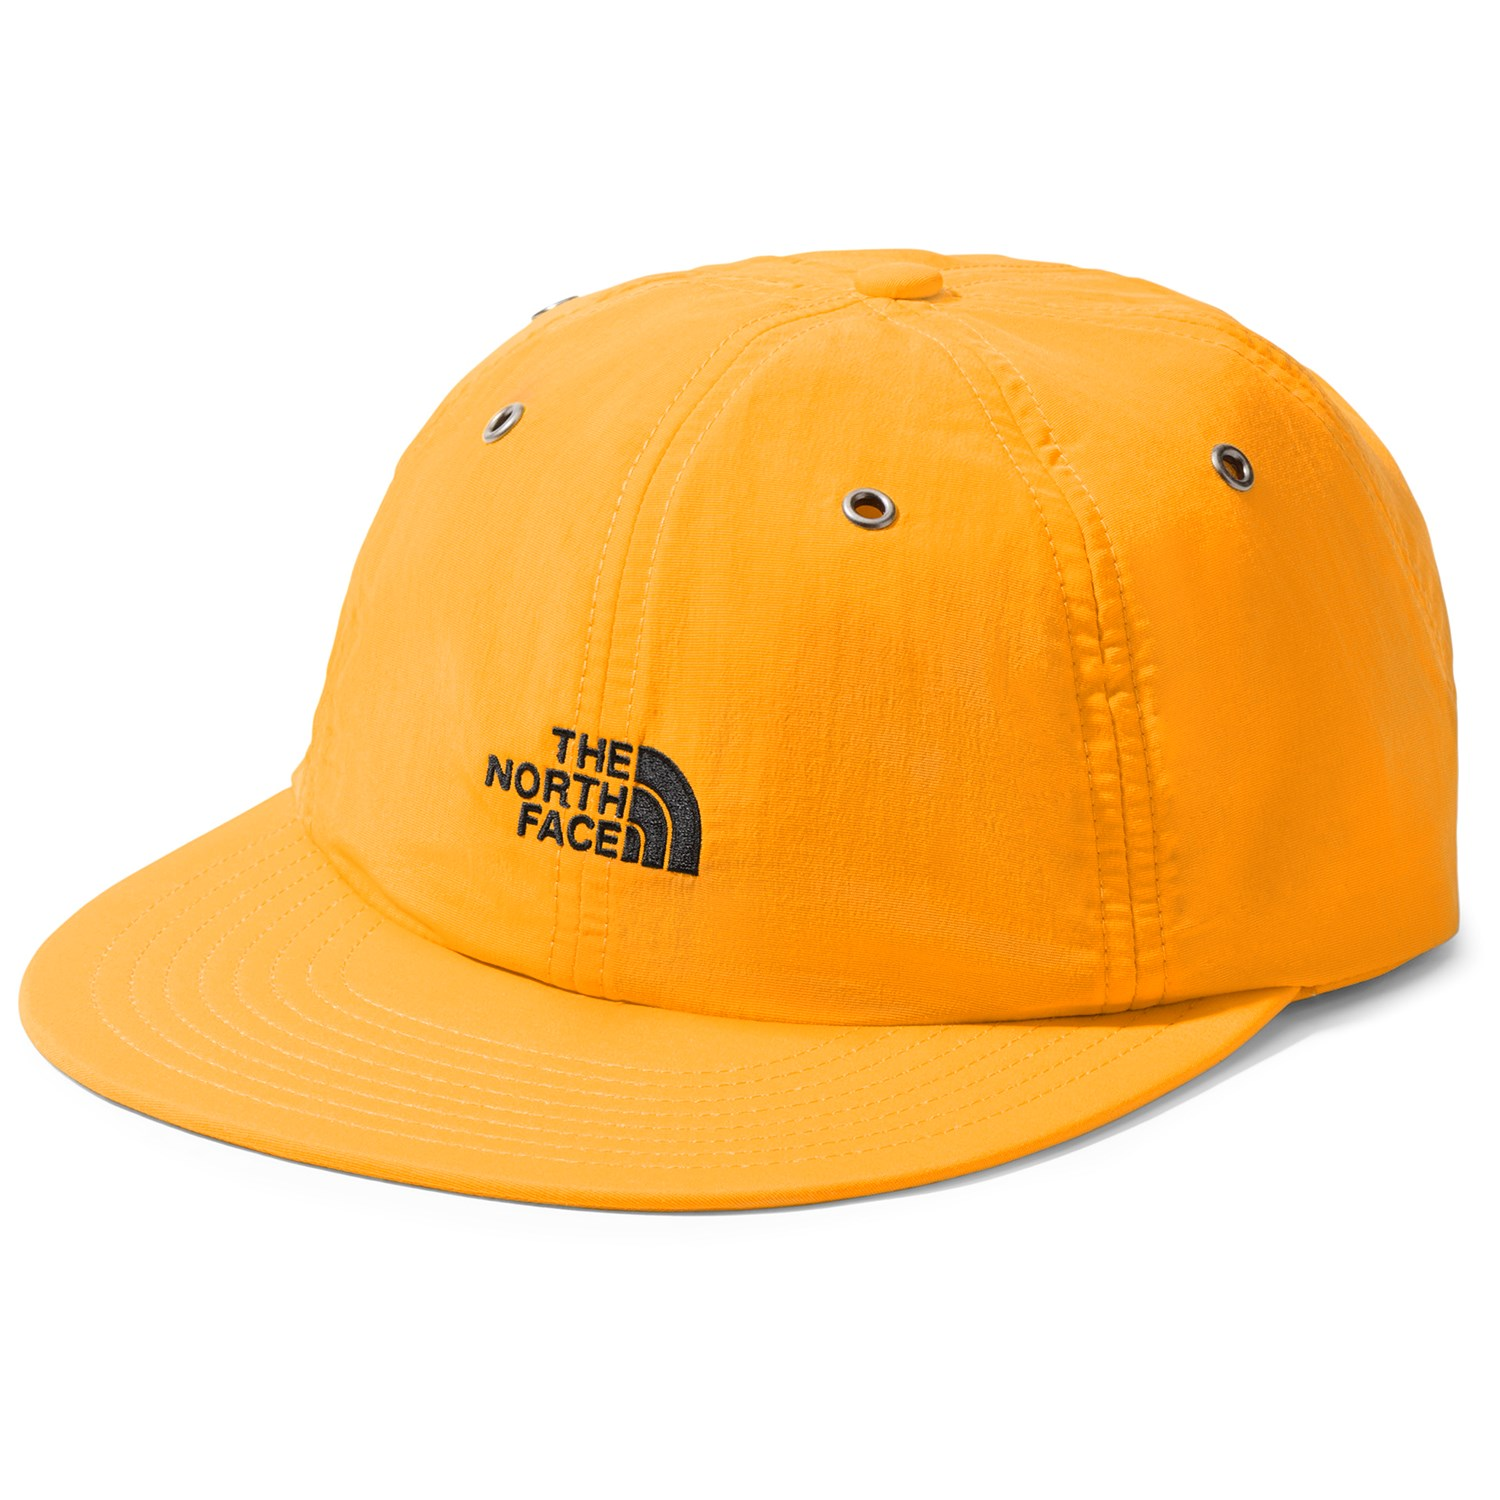 d661bf7b793 The North Face Throwback Tech Hat